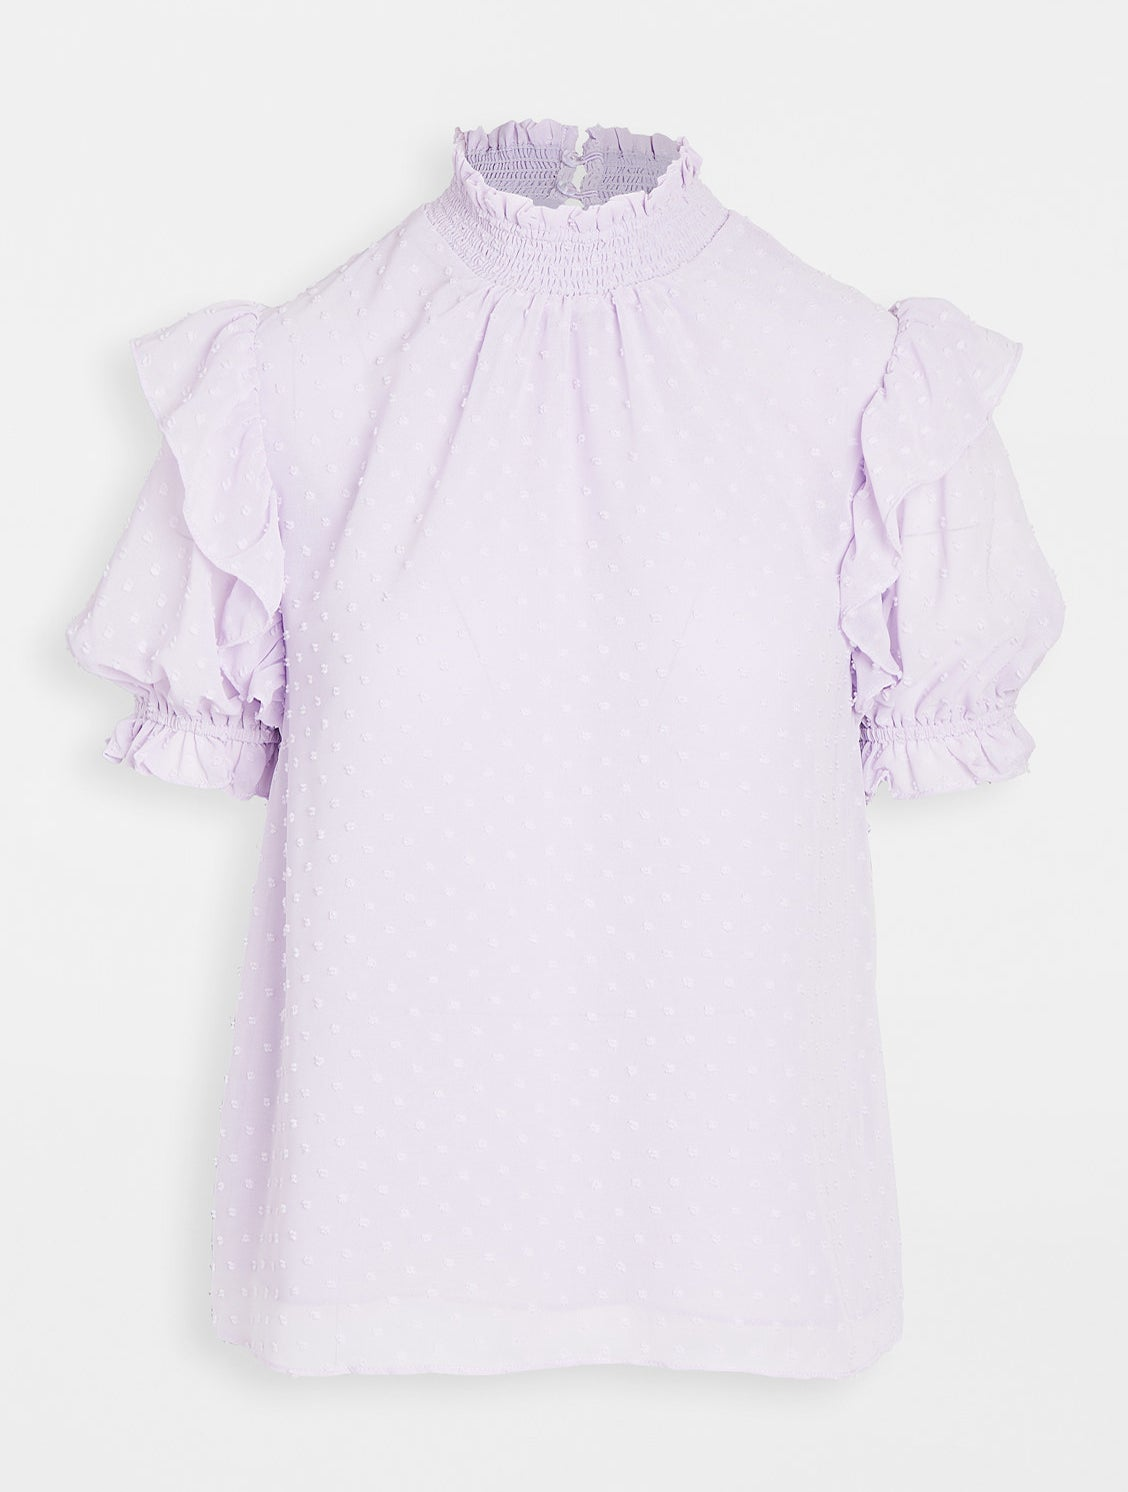 the lavender shirt with ruffled short sleeves with elastic cuffs and tiny polka-dot like embroidery throughout